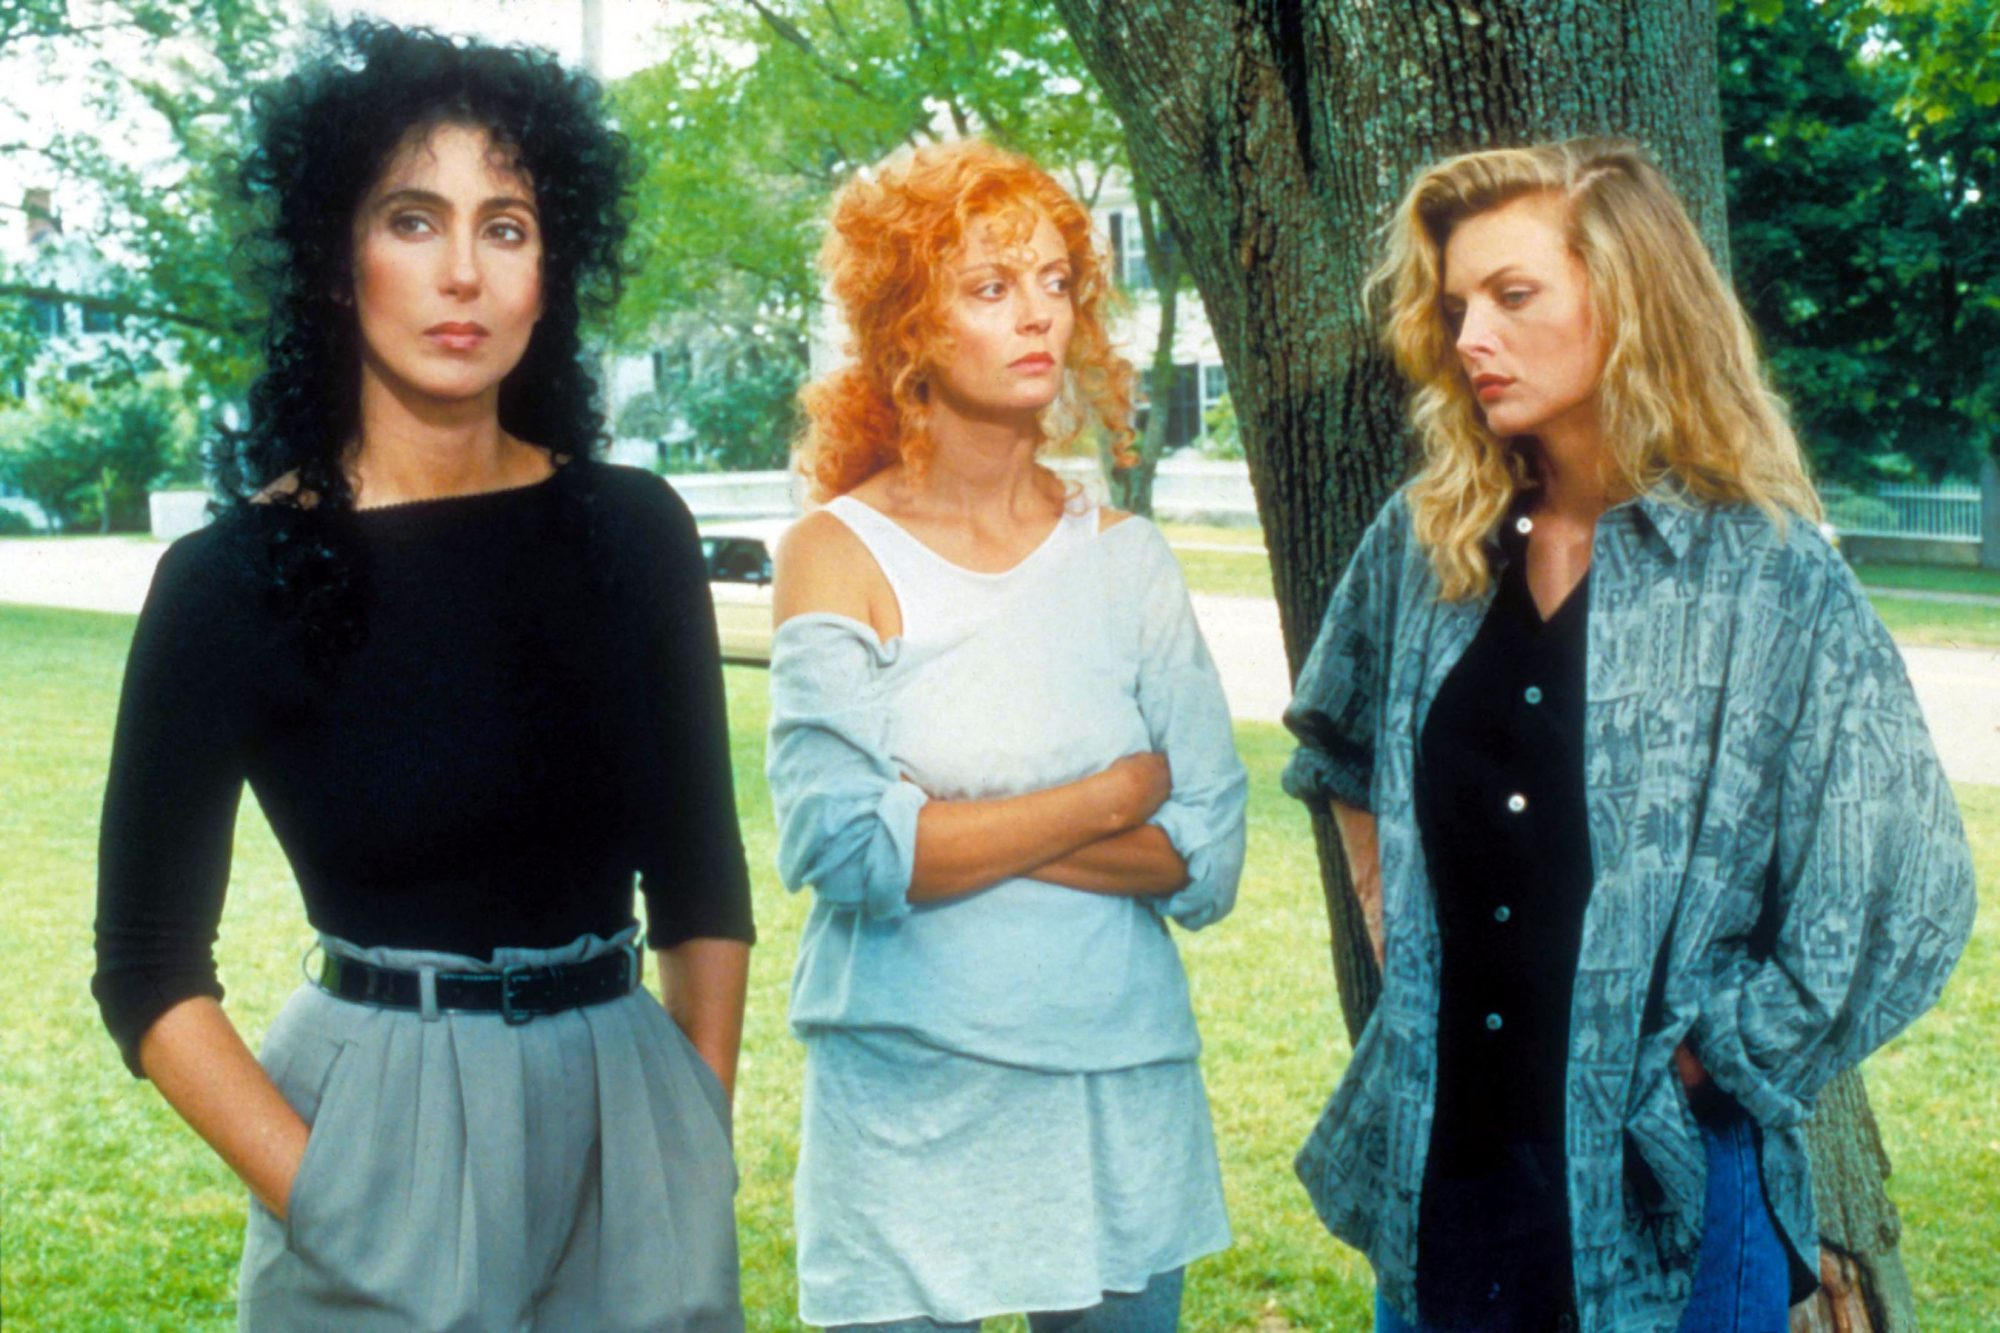 THE WITCHES OF EASTWICK 1987 CHER SUSAN SARANDON MICHELLE PFEIFFER WOE 049, Photo by: Everett Collec